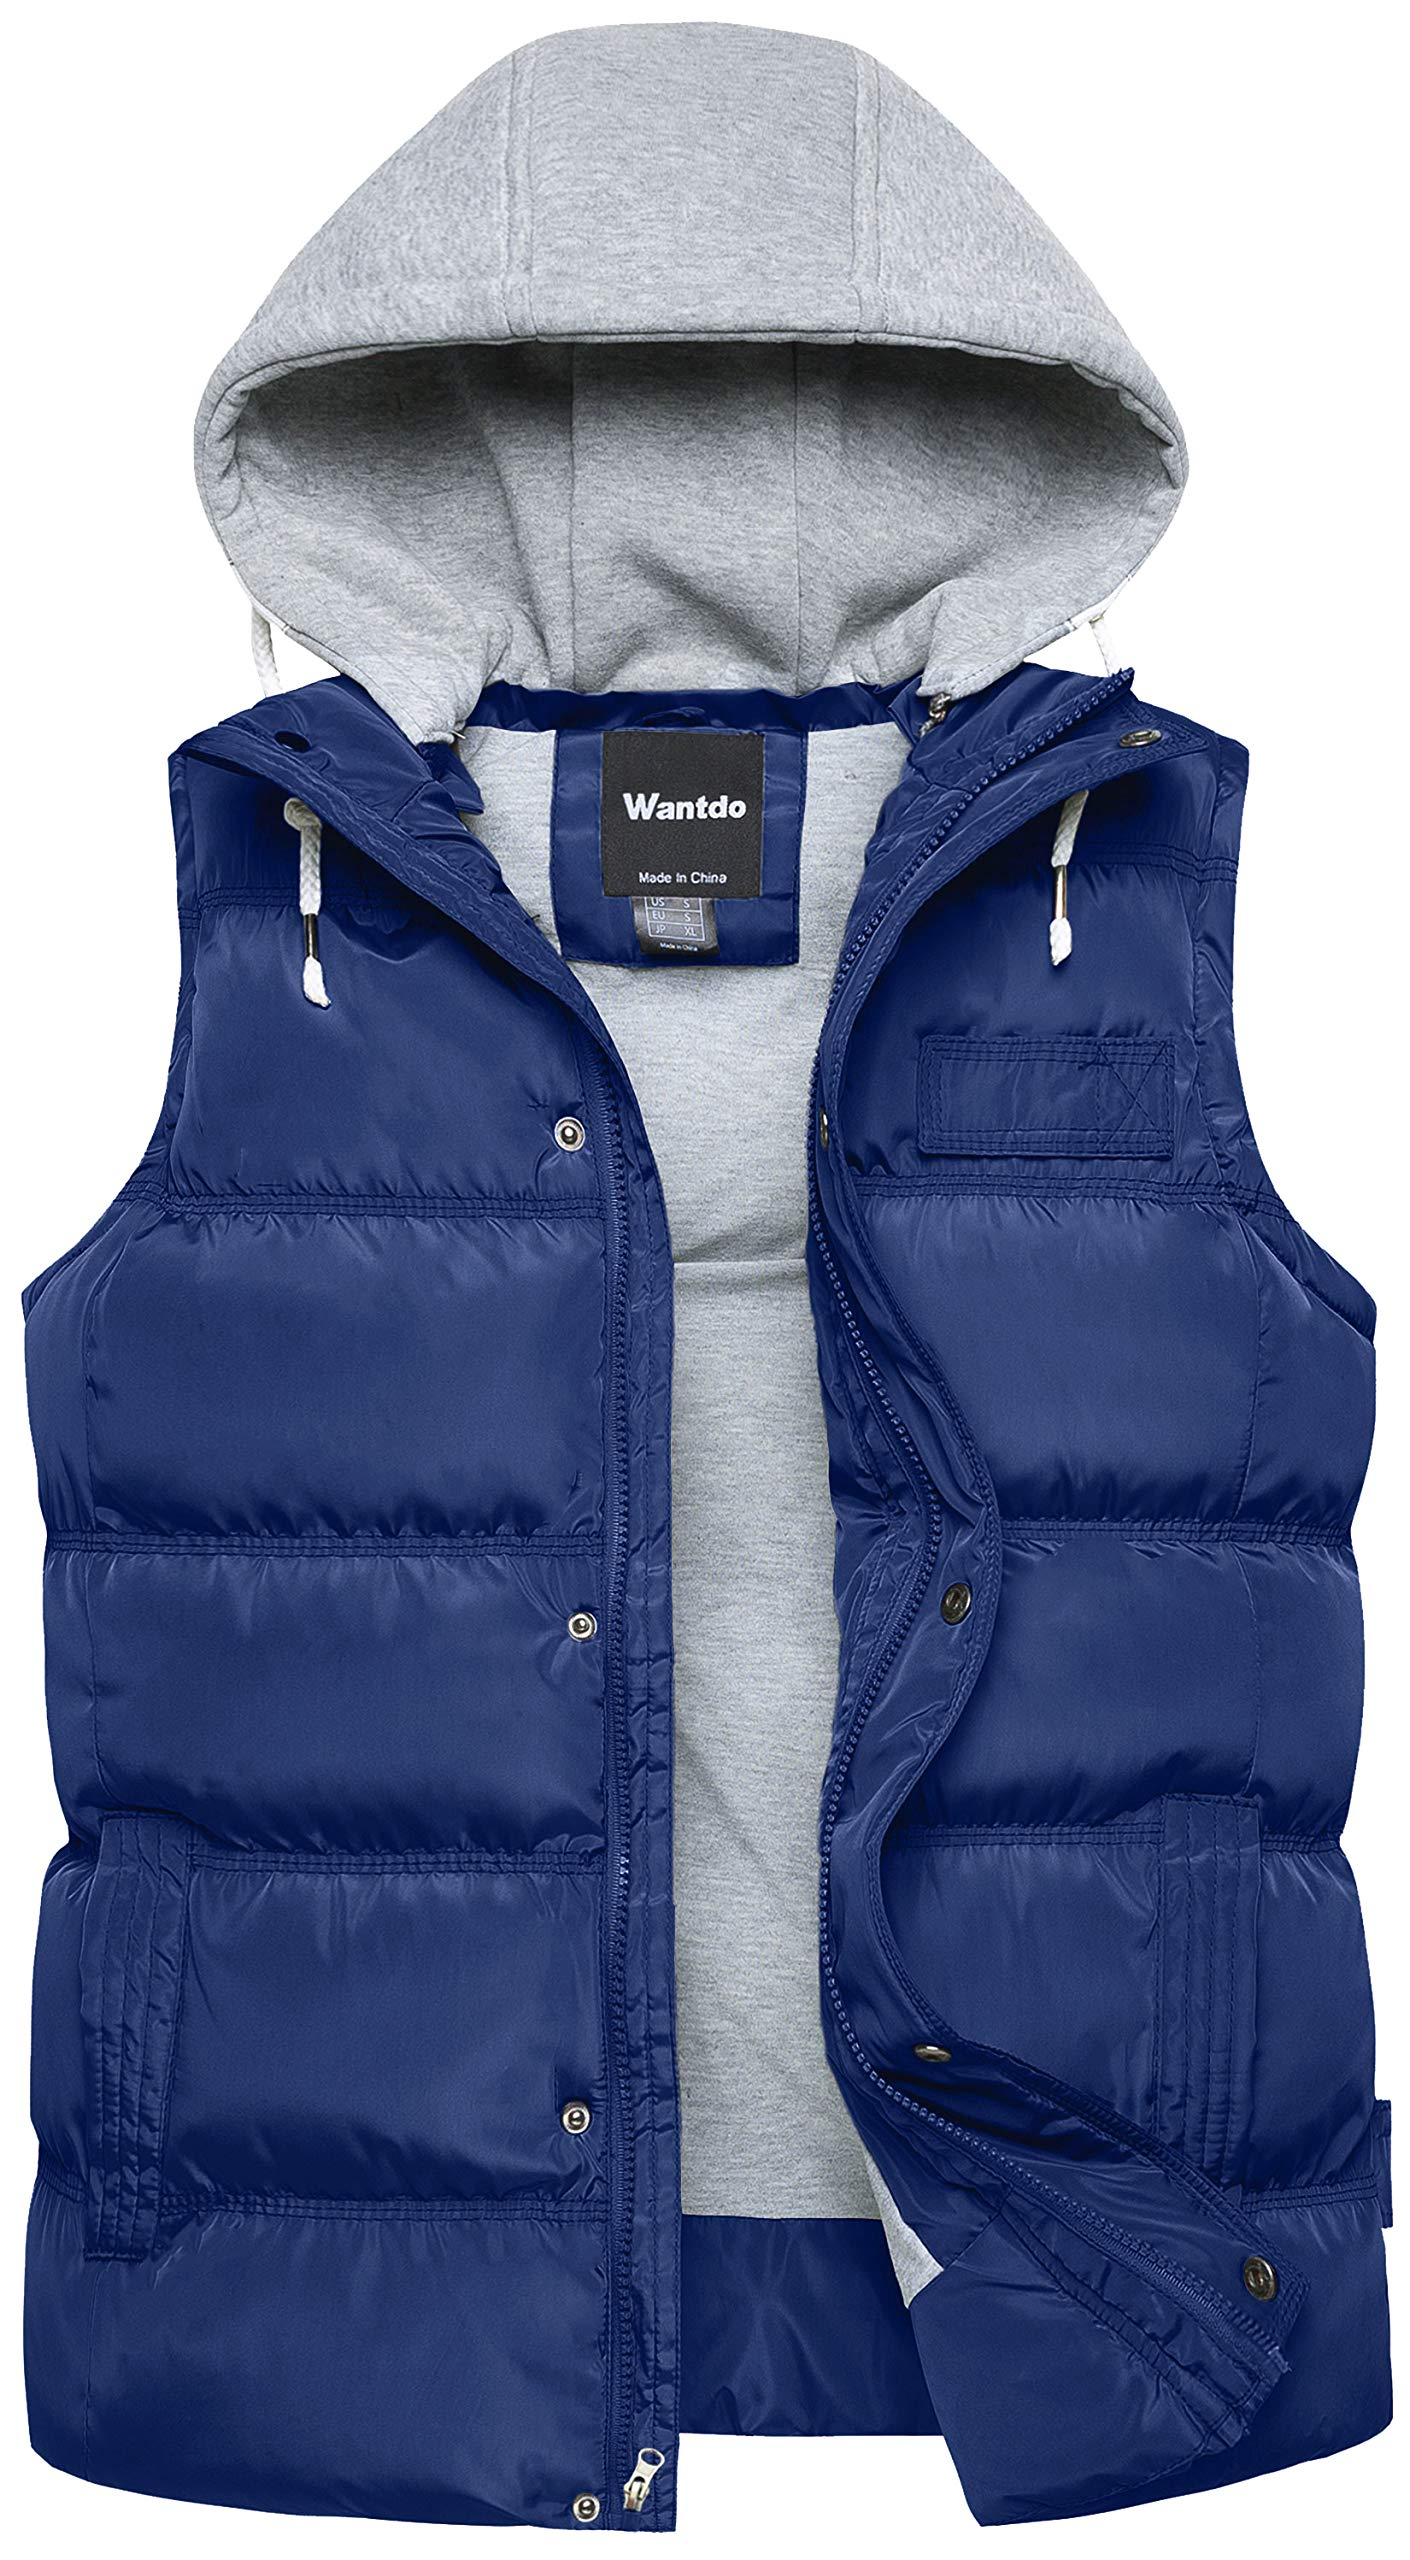 Wantdo Men's Thick Puffer Vest Water Repellant Hooded Winter Coat Blue Medium by Wantdo